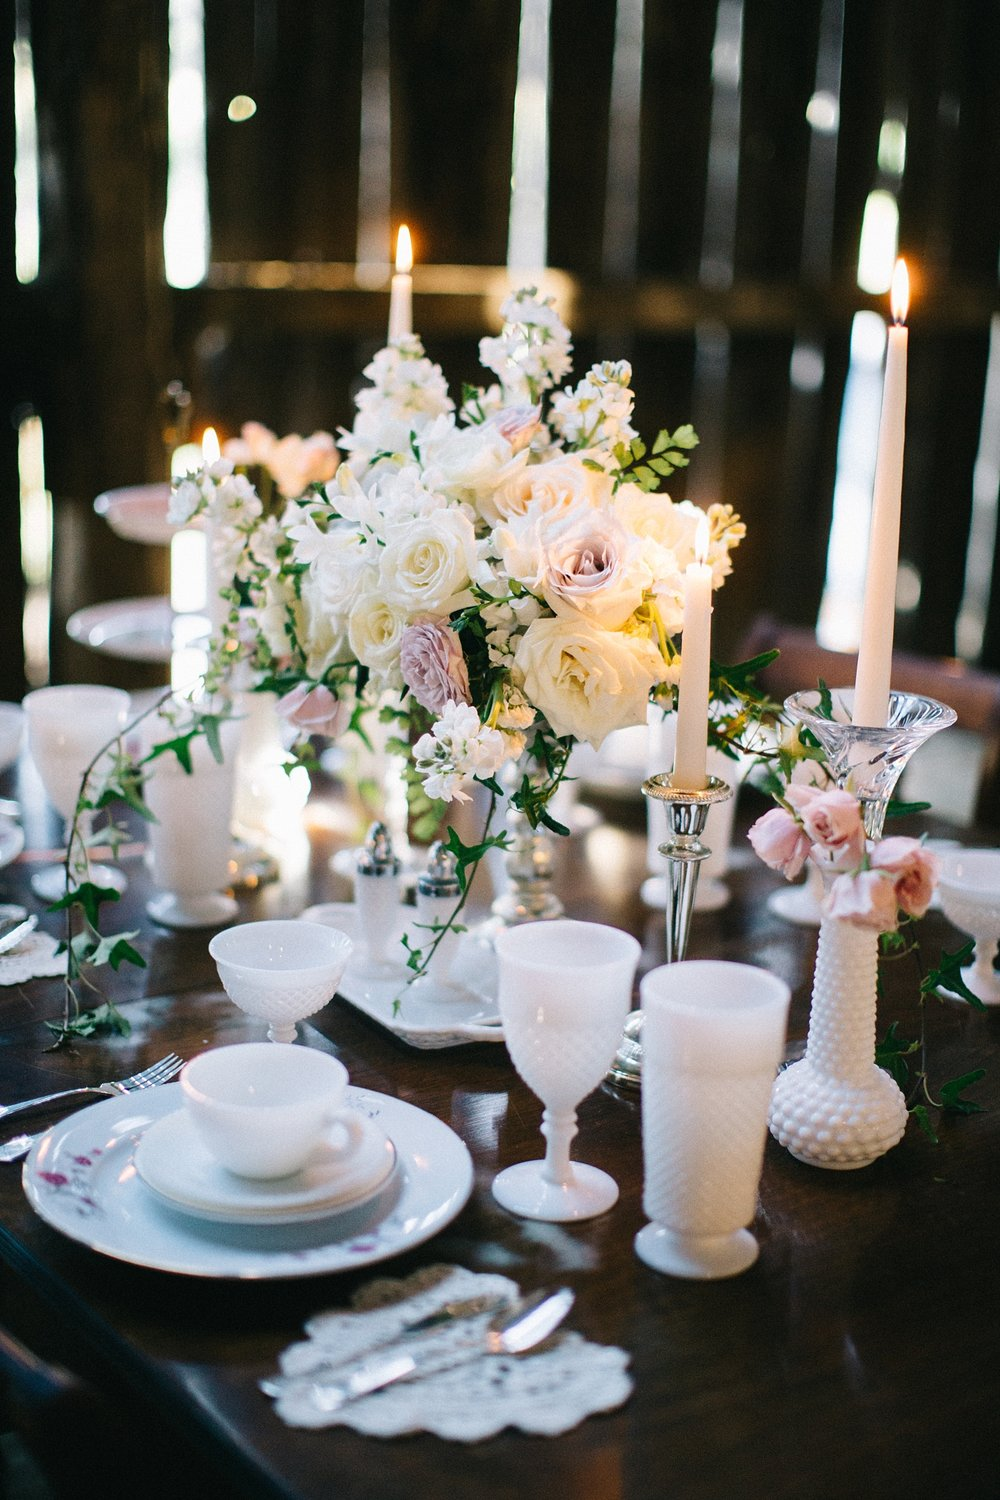 We love the milk glass and delicate floral china pattern that Vintage Vogue styled on one of her rental dinning tables. Those pieces combined with the mercury glass and centerpiece from Sapphire & Lace, and white candle tapers all worked together to really lighten up the space.